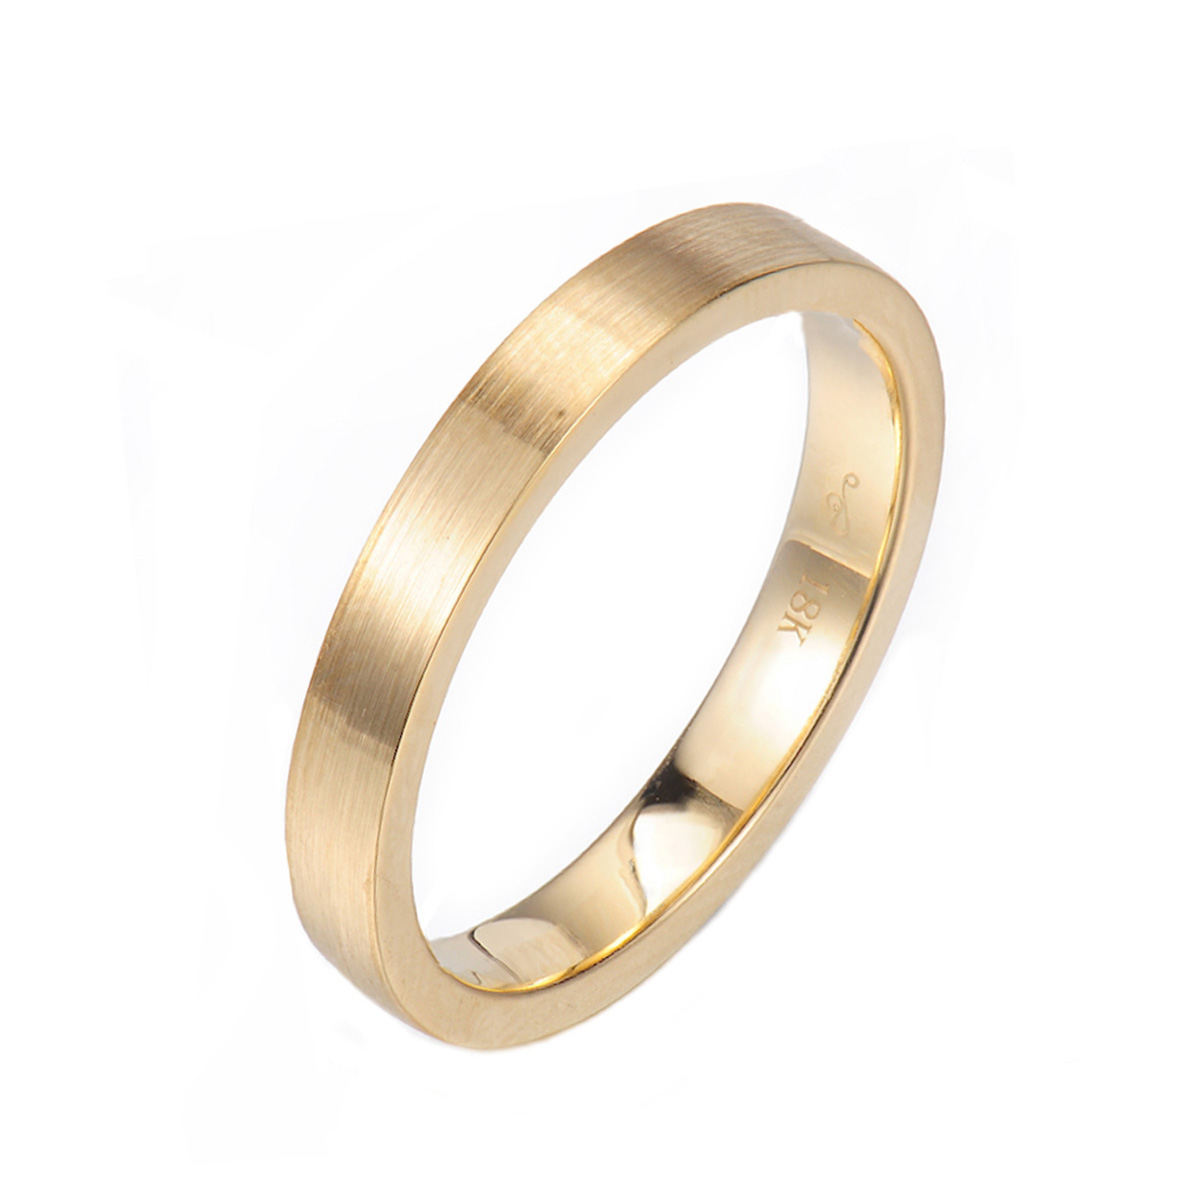 Z-Chic-square-3mm-Satin-Gold-Band-Ring-Guard-Spacer-14k-18k-JeweLyrie